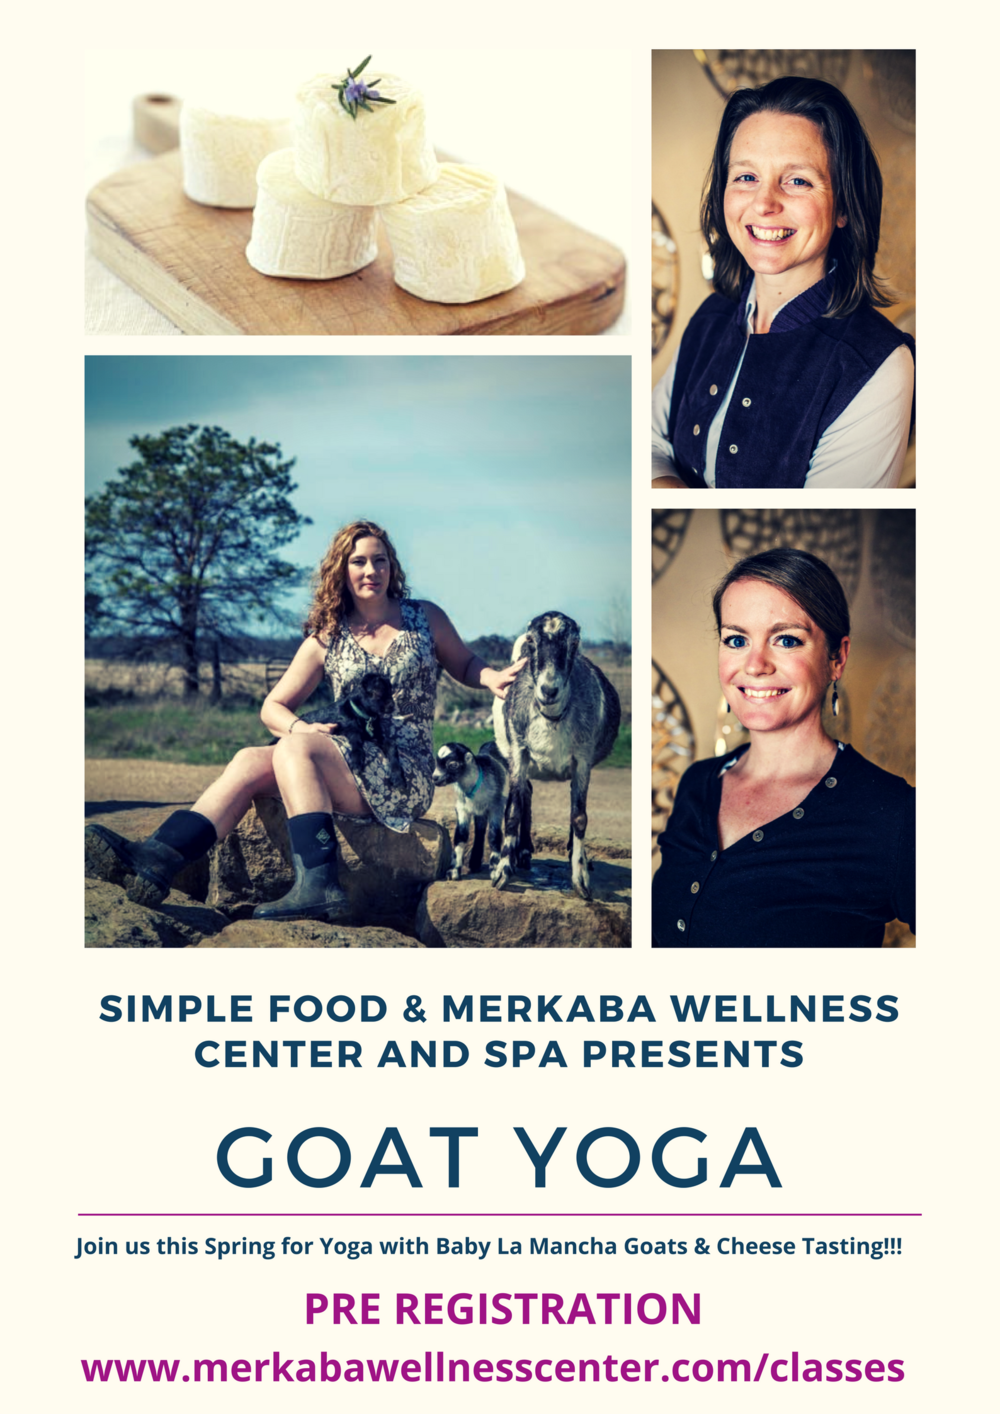 During Spring, join us for a special treat, Yoga in the country with Baby Goats and Cheese Tasting from Simple Food. Your Practitioner will guide you through classic empowering and relaxing yoga poses. Your body becomes a playground for goats just born into this world. It's a circle of fun and healing that will open your heart. Completely serious, incredibly hilarious, and everything in between. Each class ends with Simple Food's, specially crafted Goat Cheese and Milk tasting. Bring your own Yoga mat.  This class is SOLD OUT. Please click the link below for future dates.   75 Minute Class with Cheese tasting $45 / without Cheese tasting $35